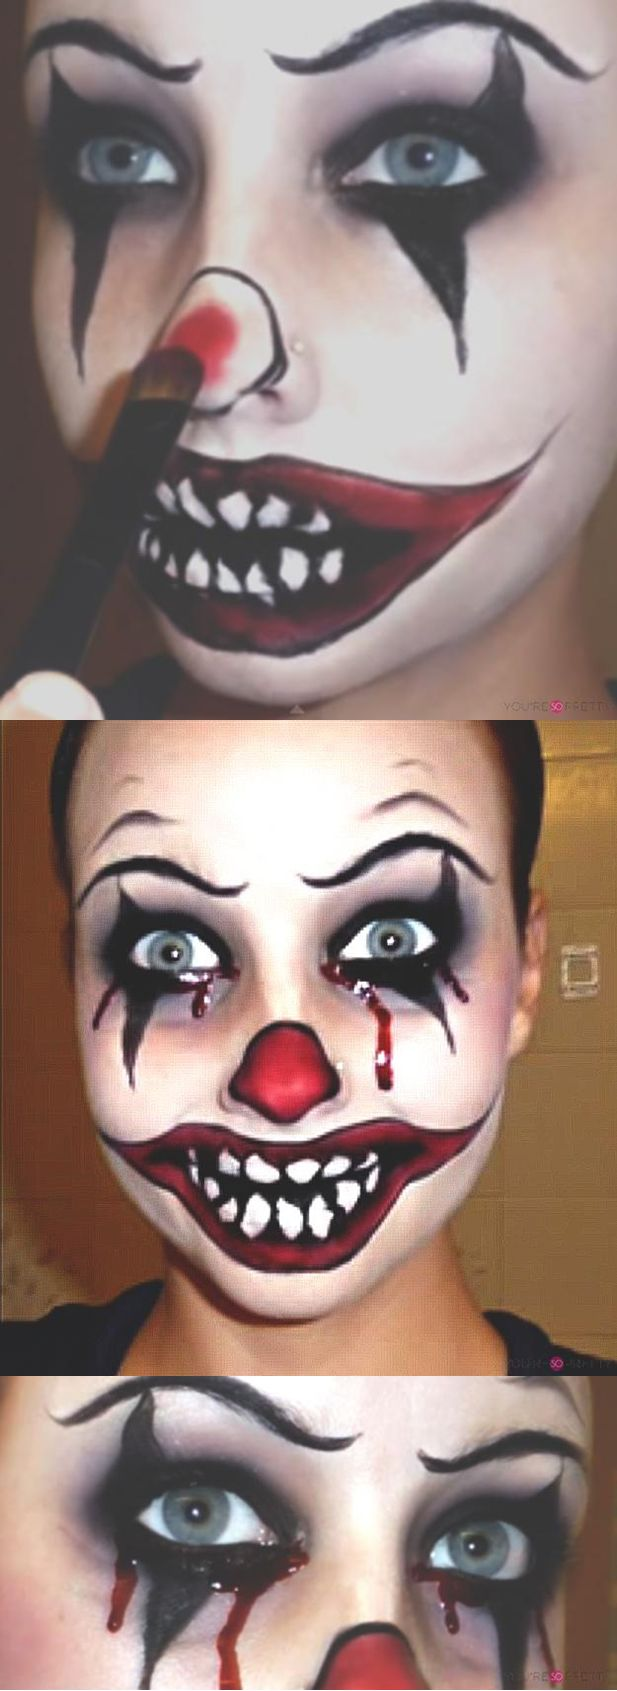 Killer Clown Makeup Tutorial | If you're looking for something a little more cre...